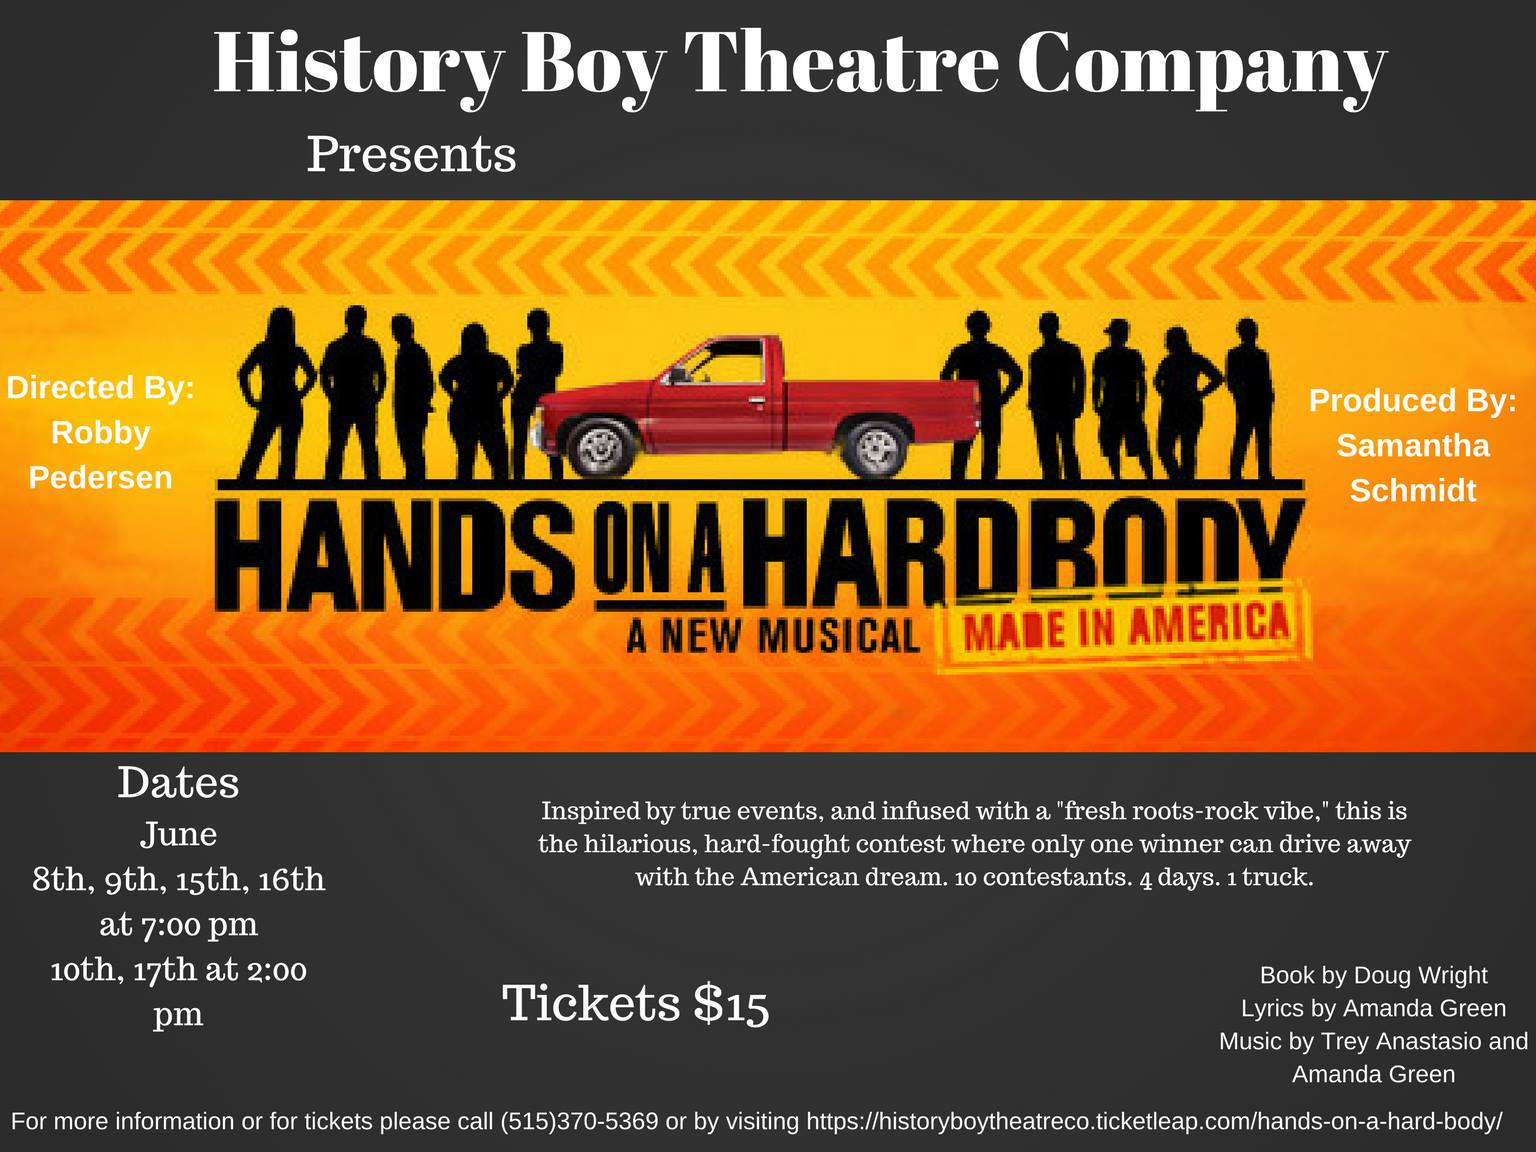 Hands on a Hardbody Flier